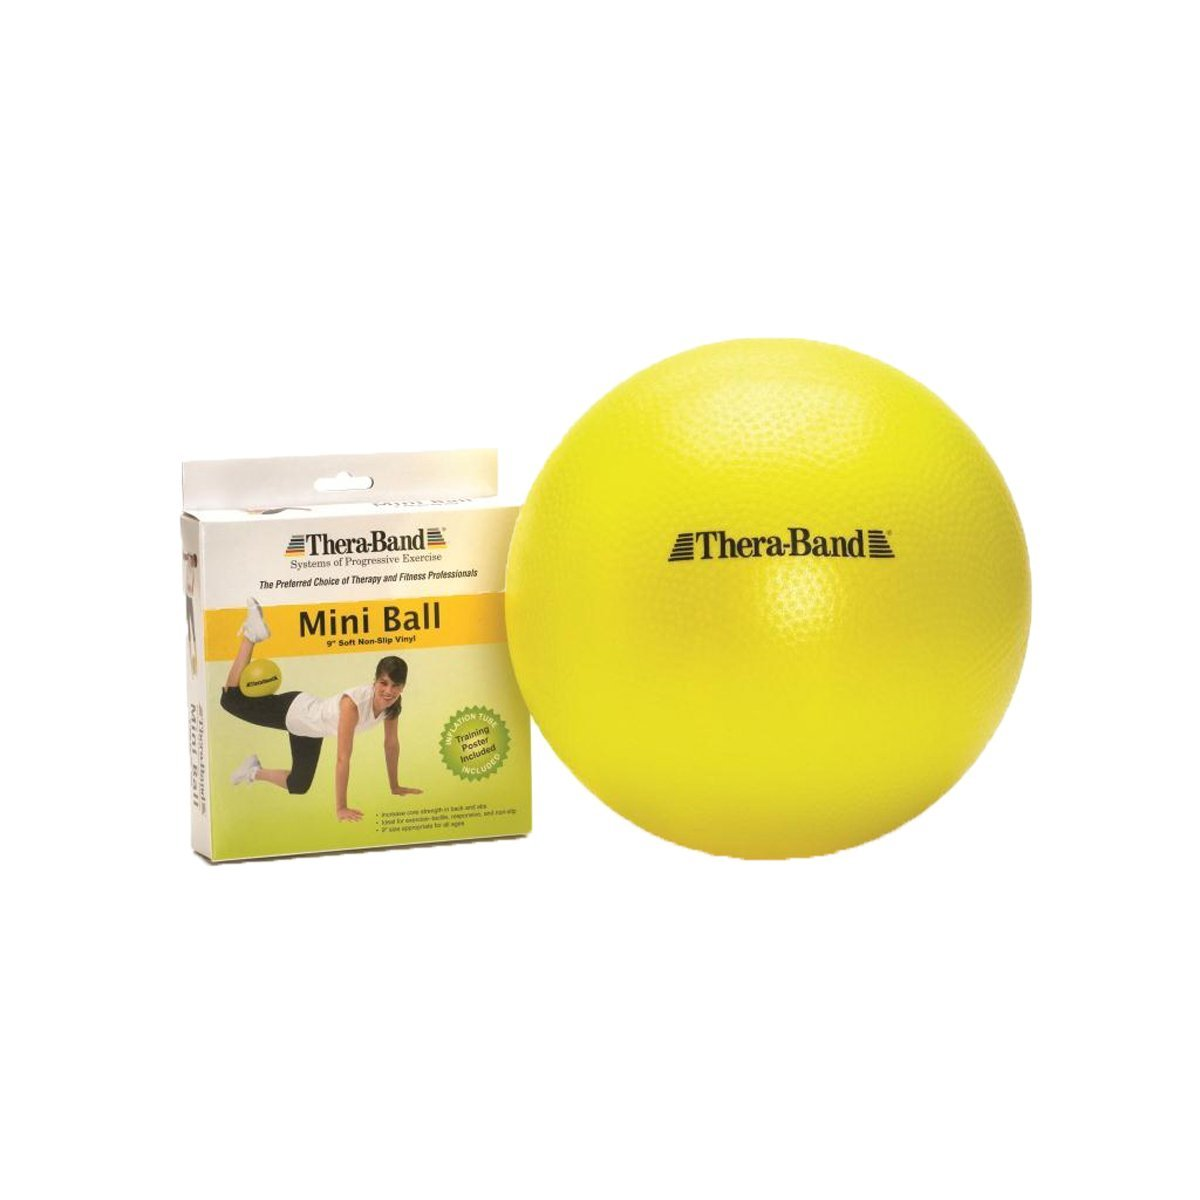 TheraBand Mini Ball